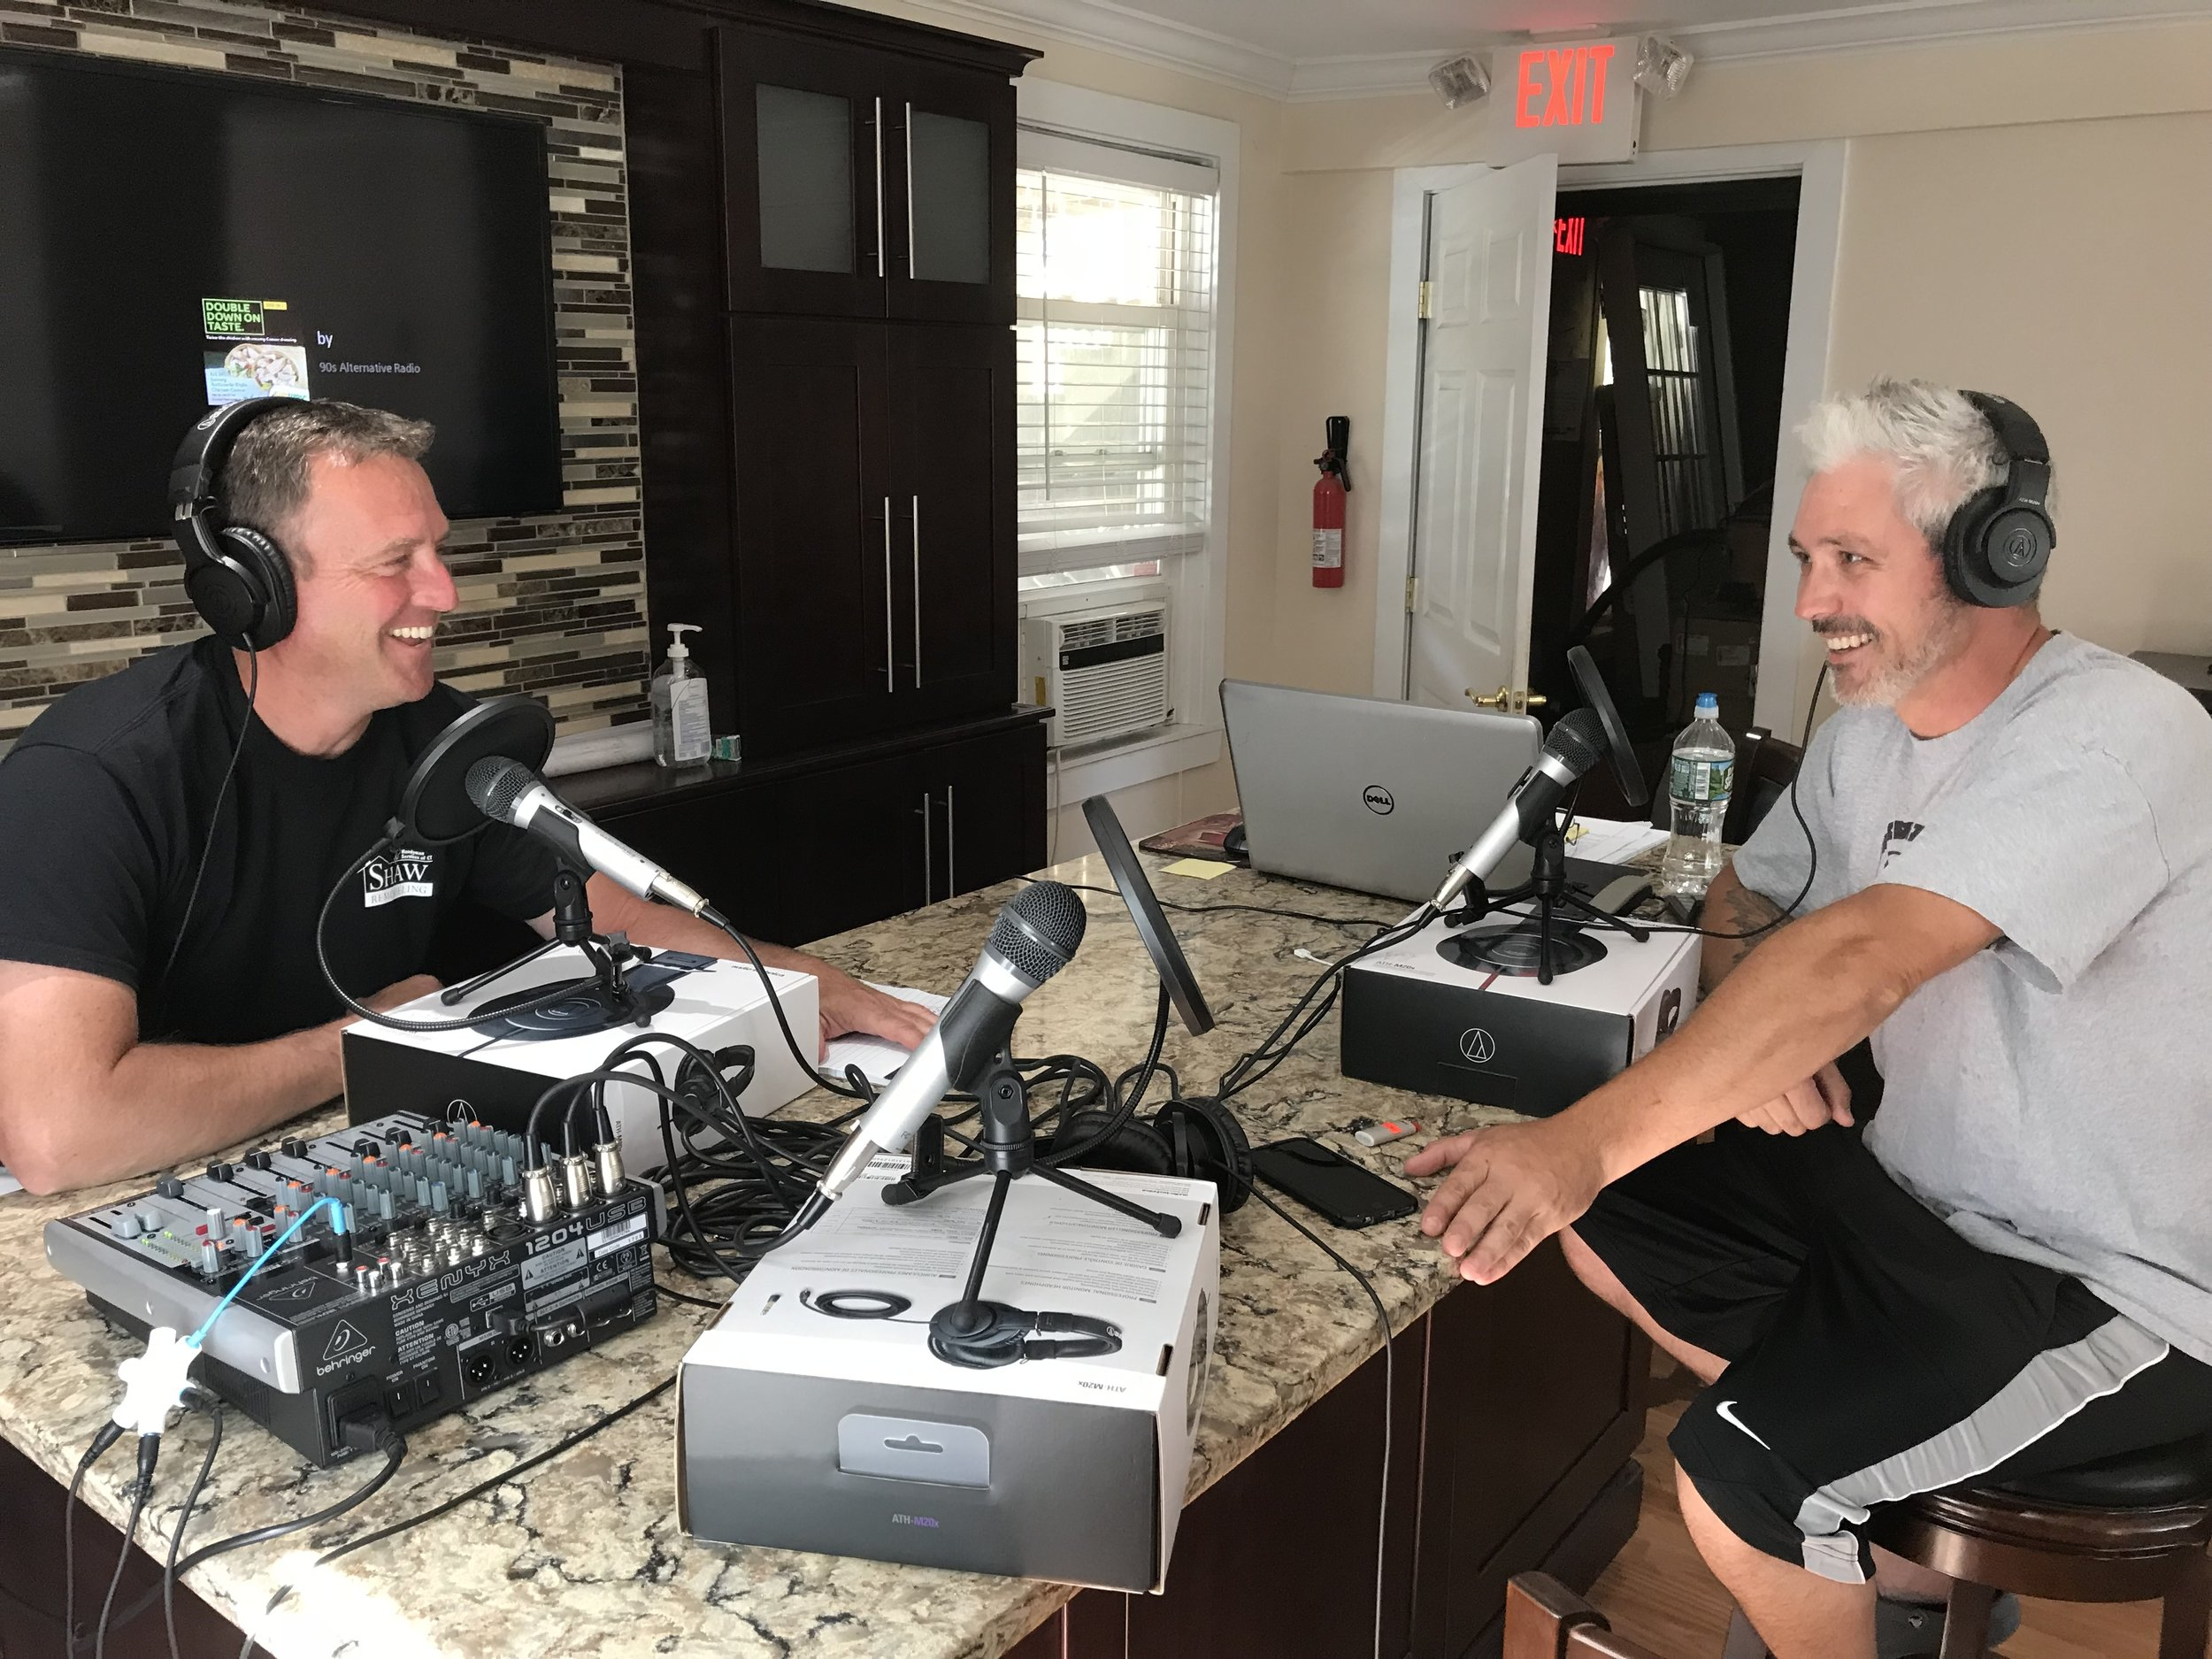 Behind the studs podcast - episode 5 - kevin mcmahon talks masonry (2).jpg